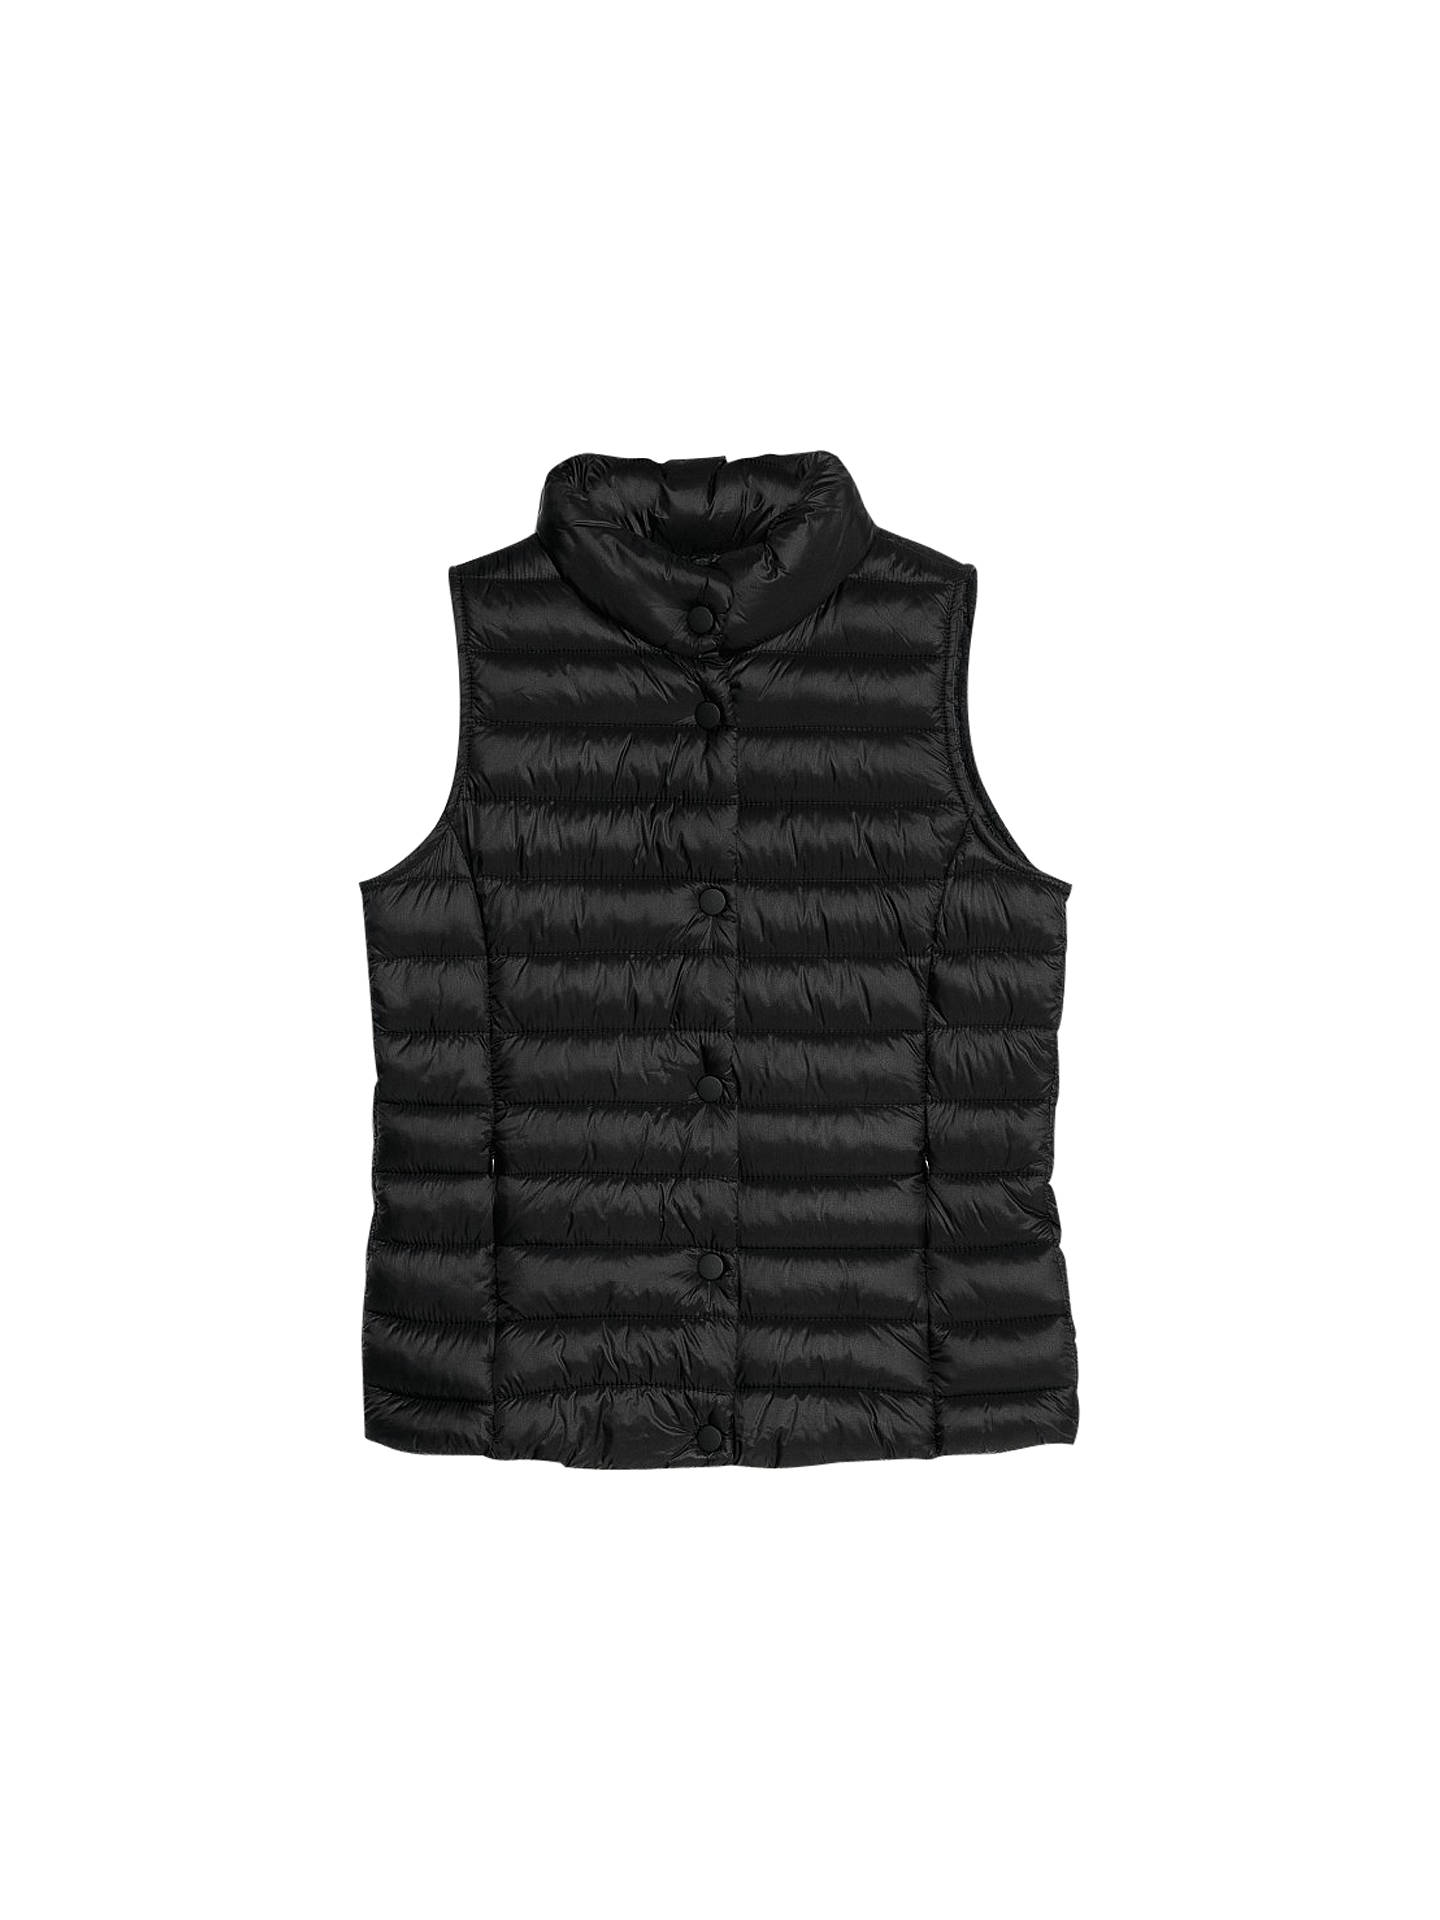 Buy Mango Water Repellent Foldable Gilet, Black, XS Online at johnlewis.com